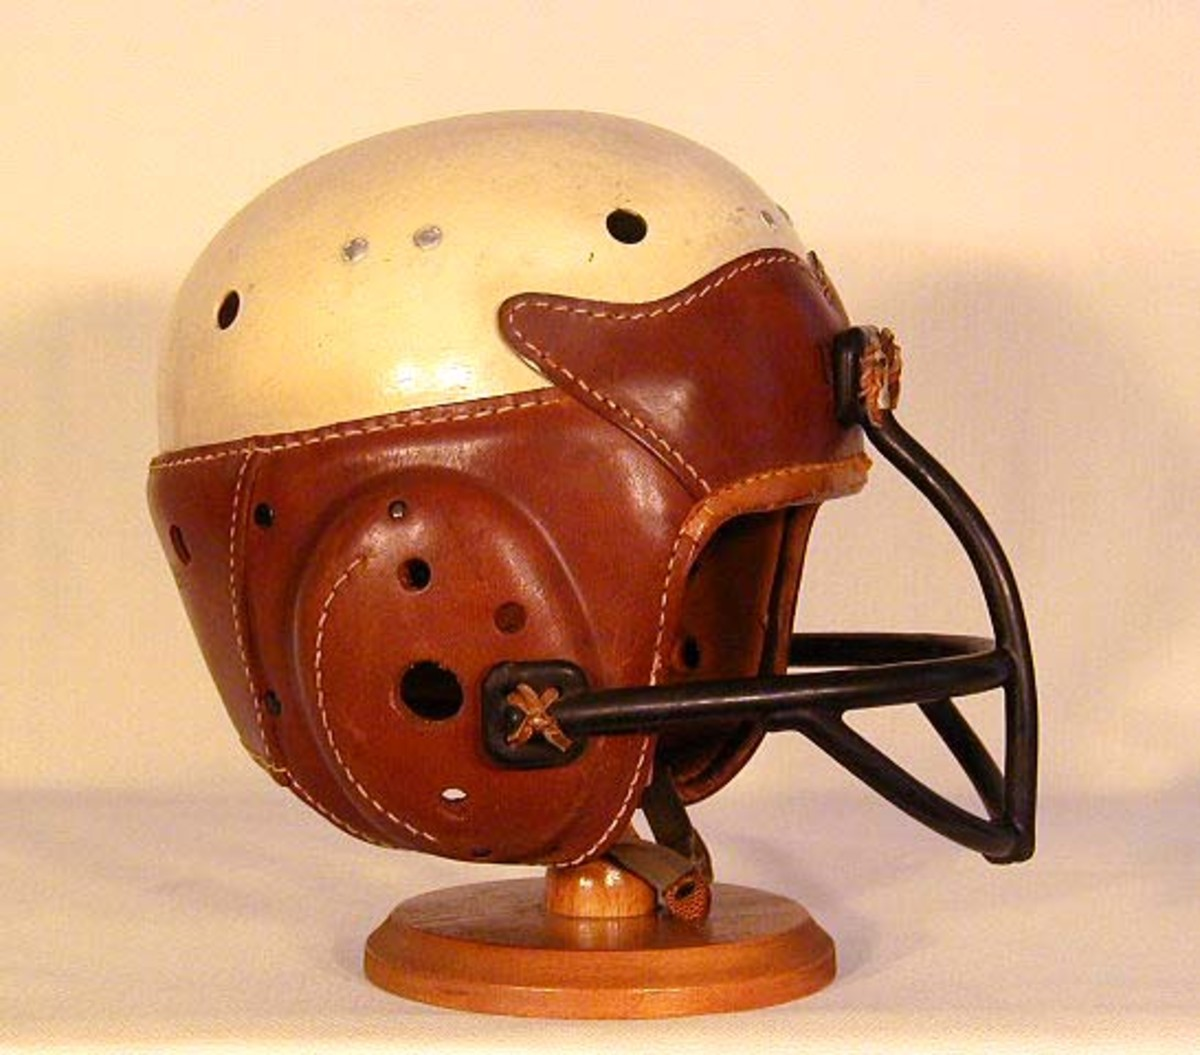 Later in the 30's a face mask was added to reduce injury to the unproteced parts of the head.